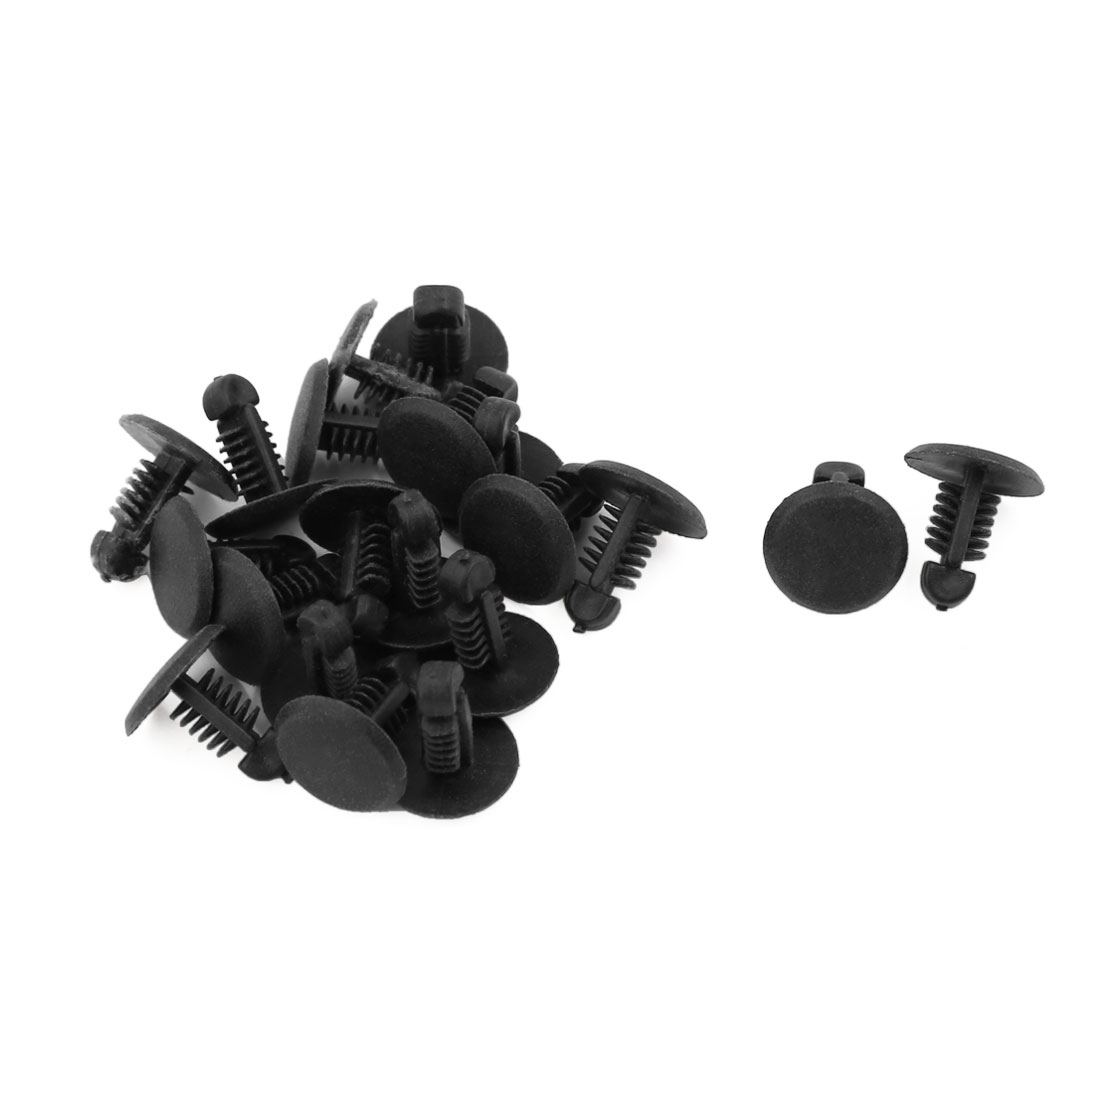 20 Pcs Black Plastic Door Trim Moulding Bumper Clips 6.5mm x 5mm